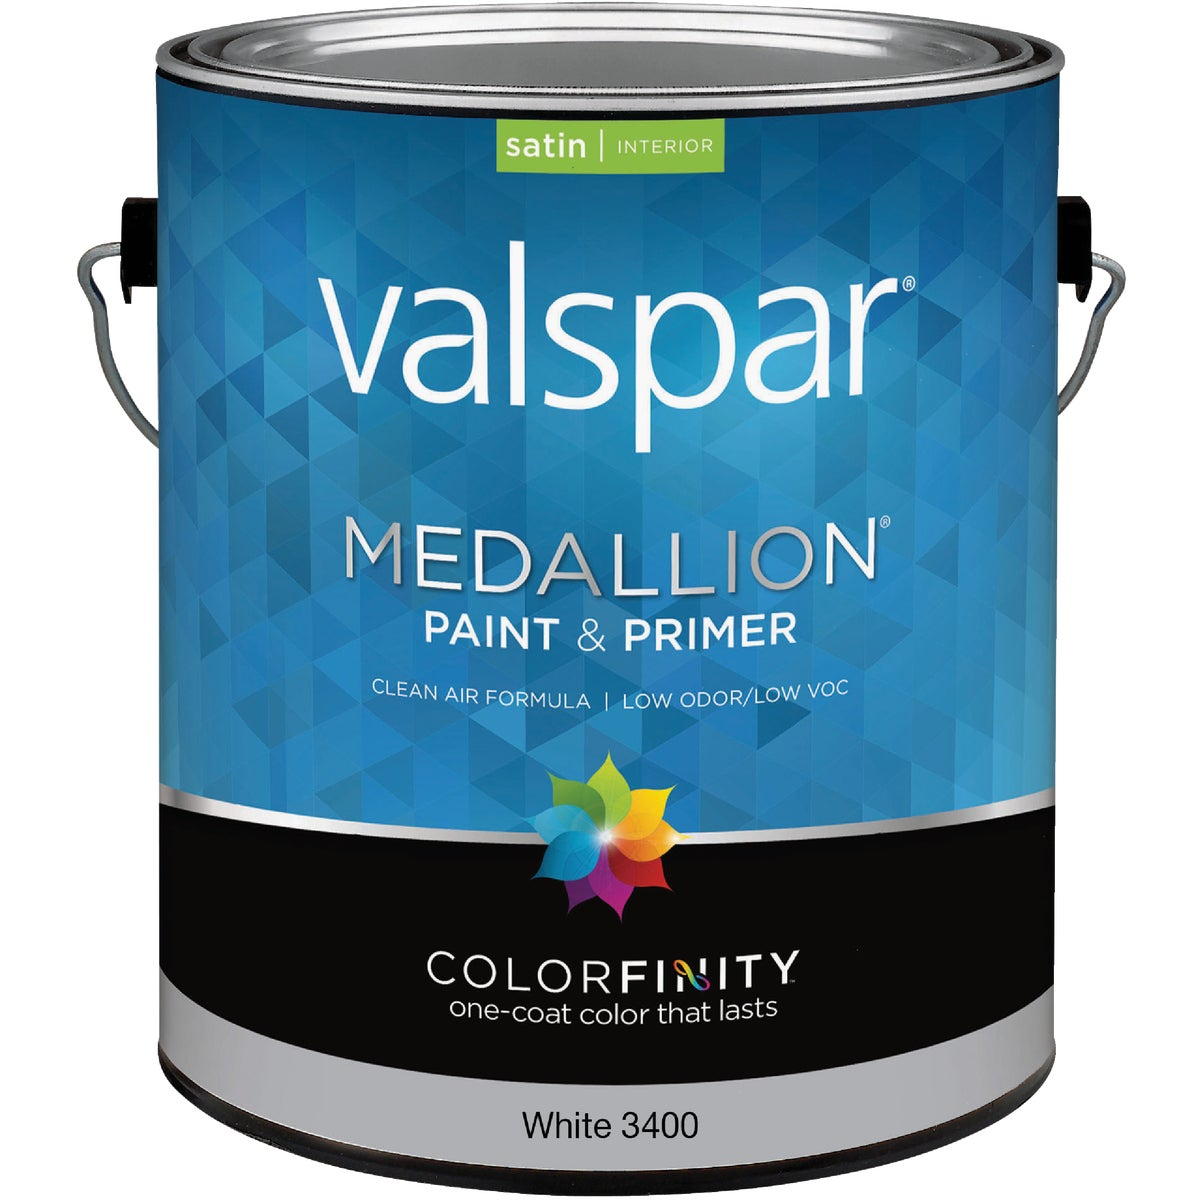 INT SAT WHITE PAINT - 027.0003400.007 by Valspar Corp